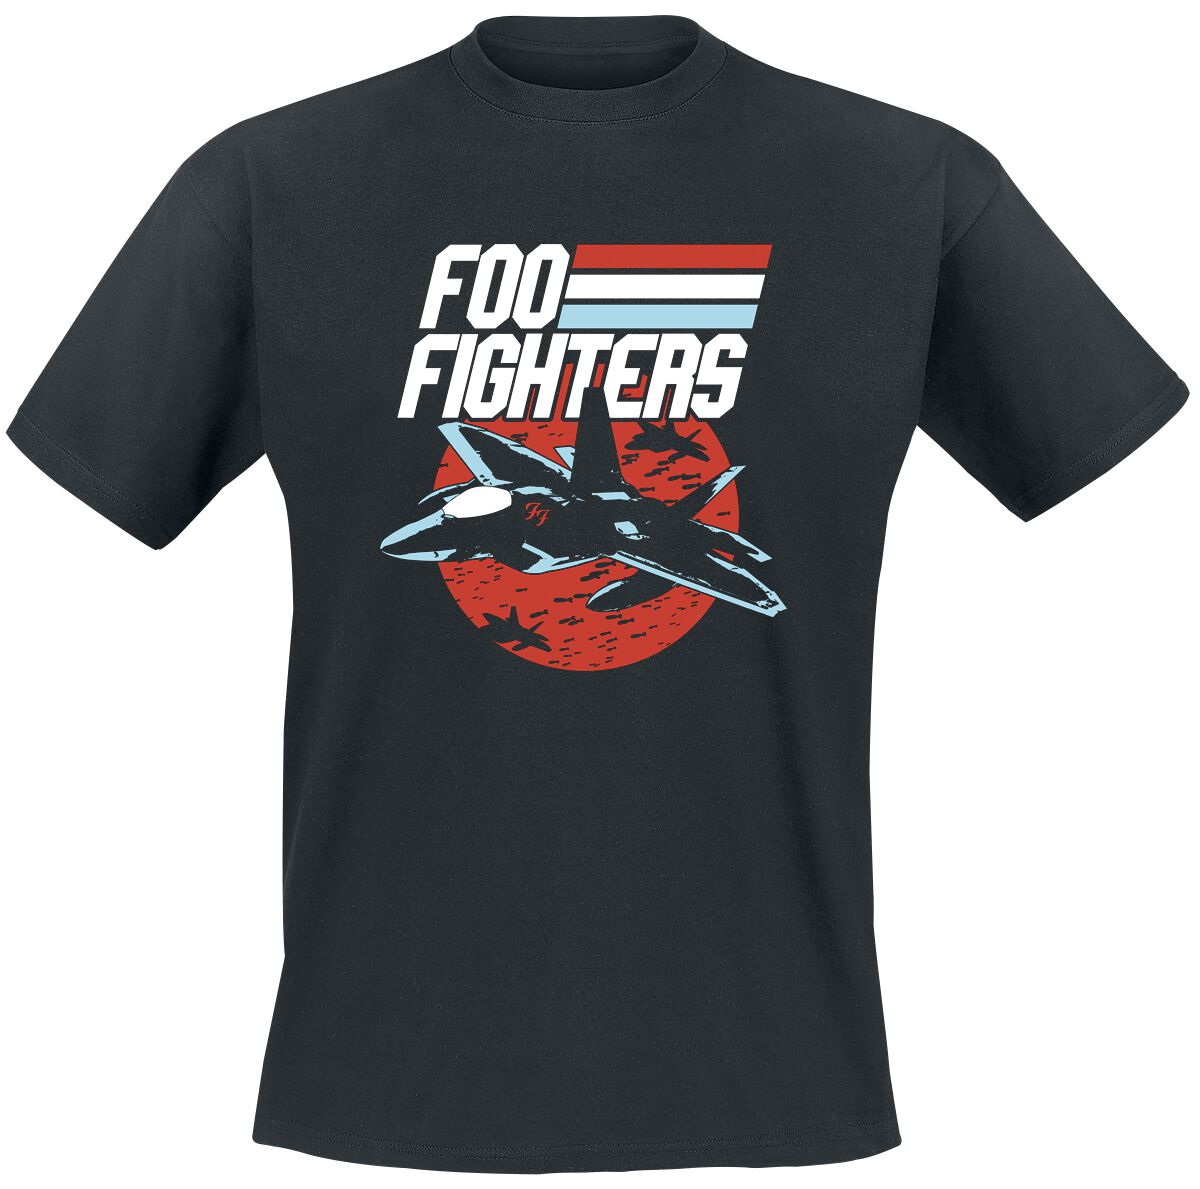 Image of   Foo Fighters Fighter Jet T-Shirt sort